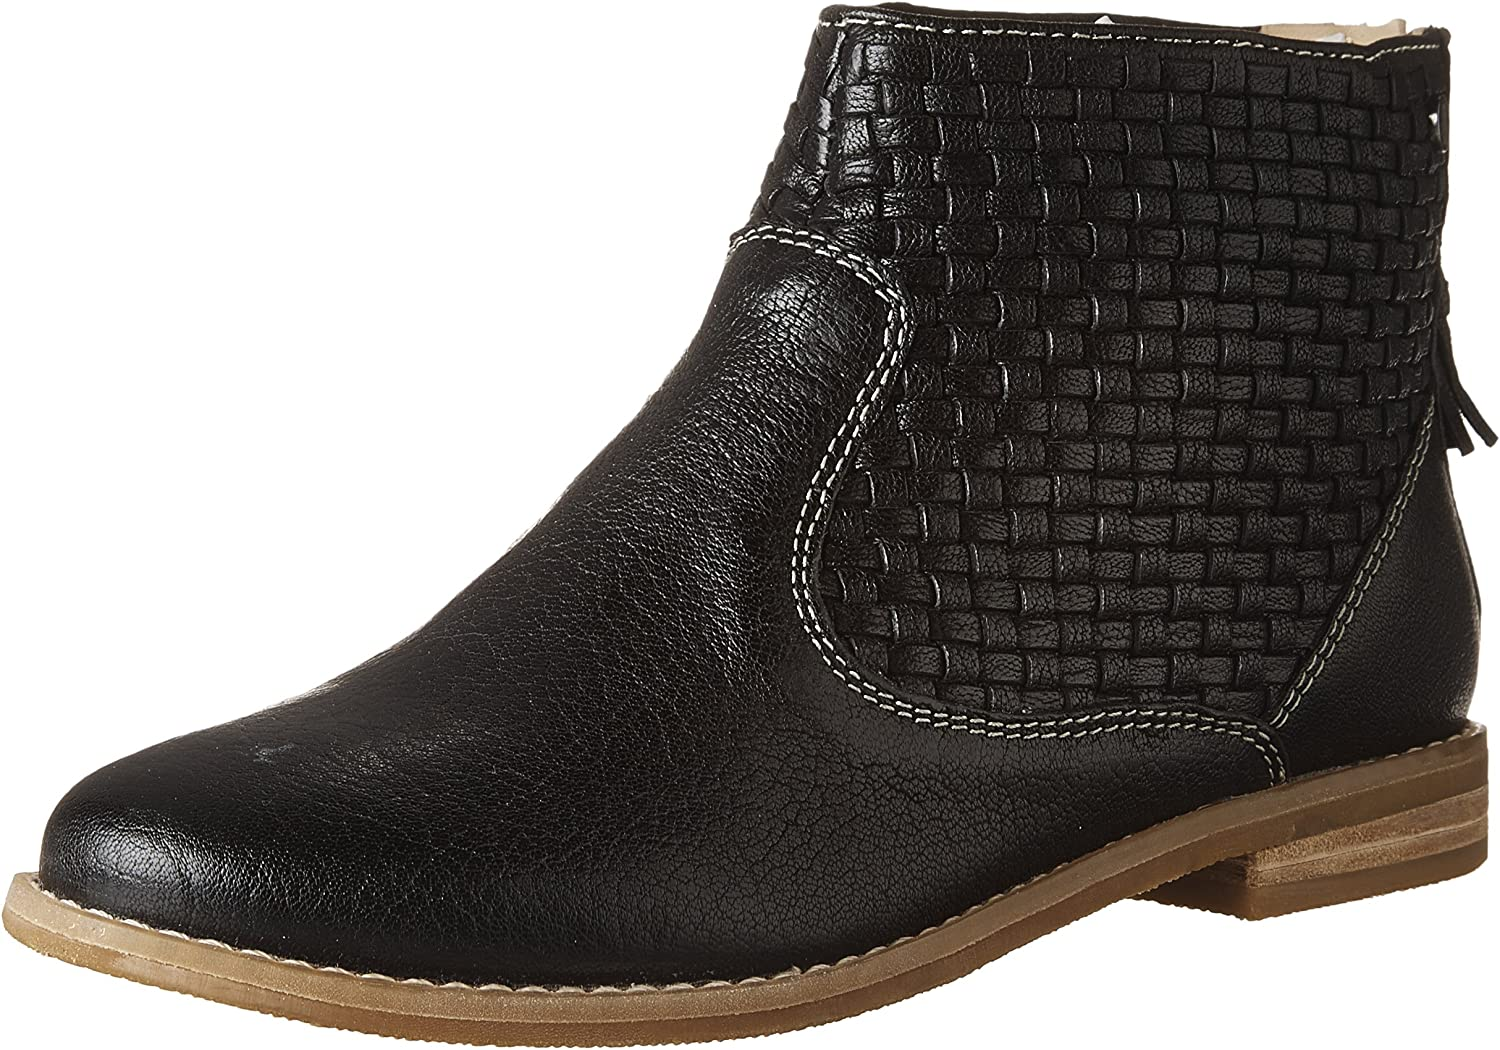 Hush Puppies Women's Adee Chardon shoes